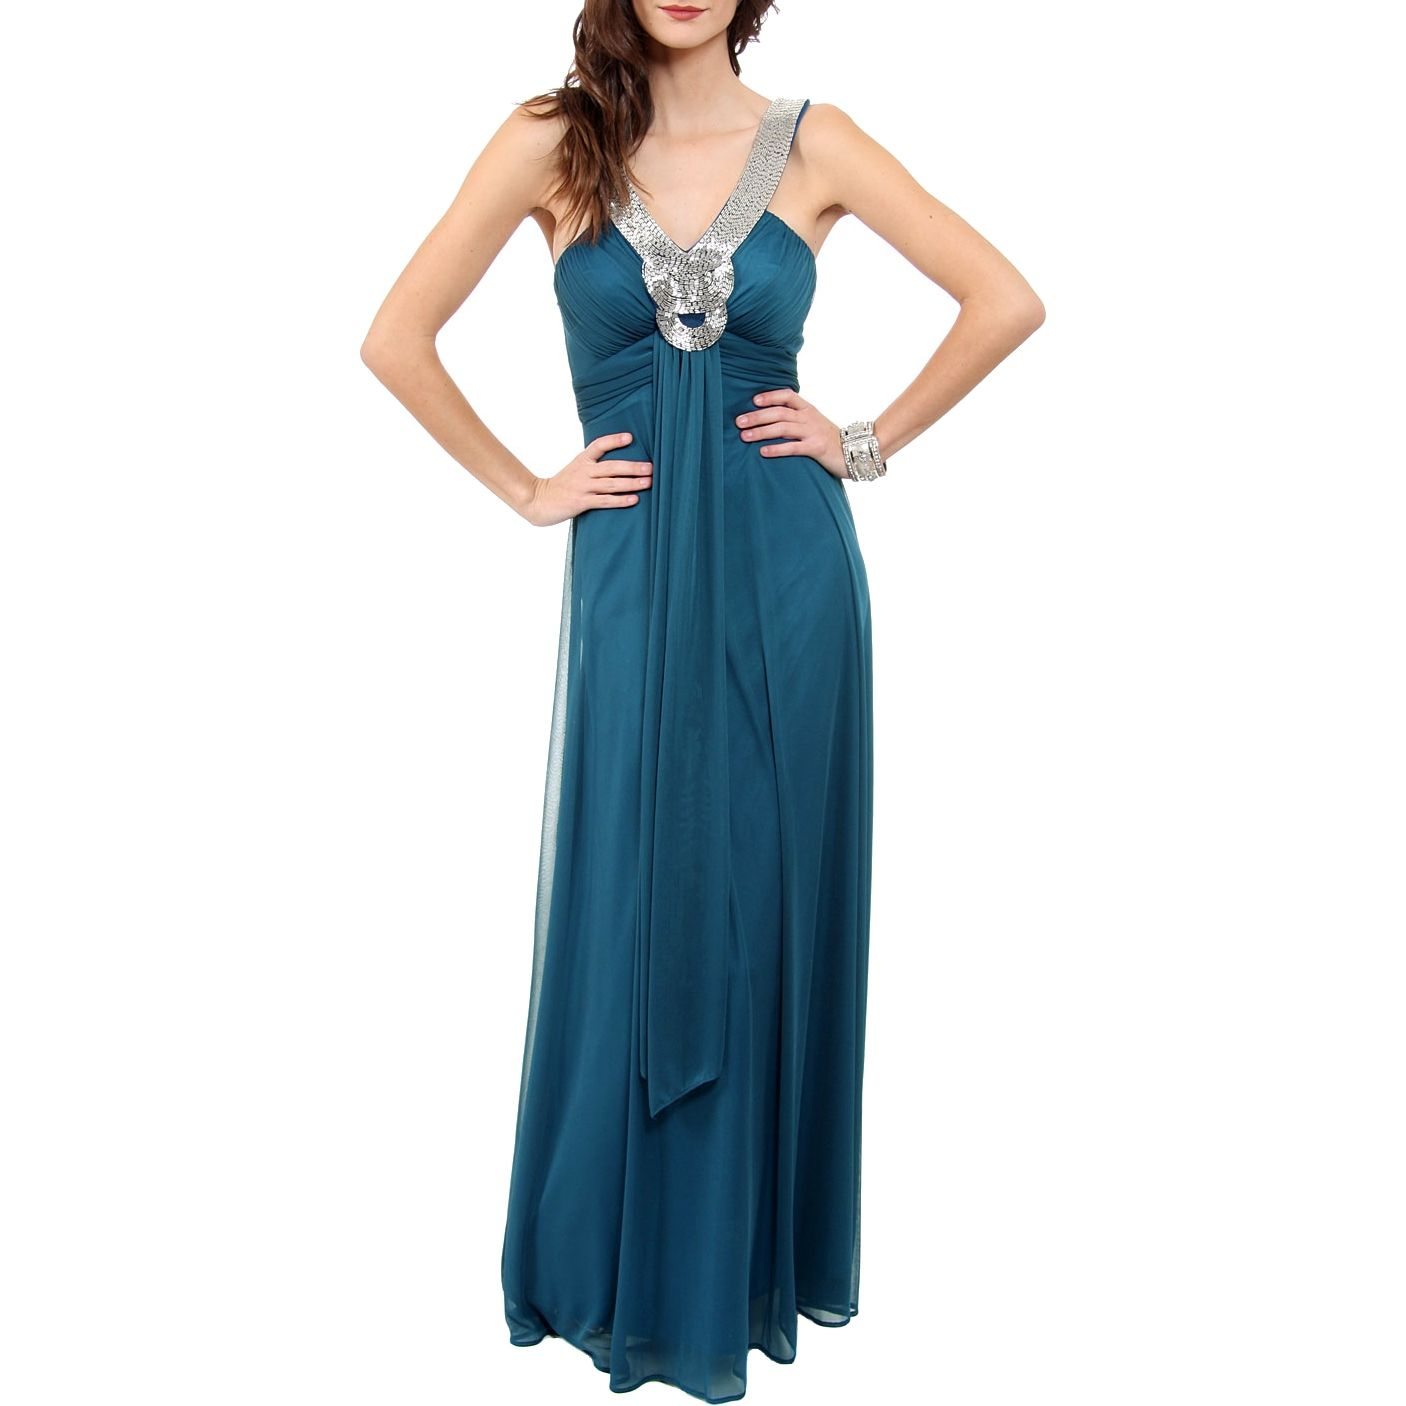 Dark teal long formal grecian dress exclusive to royaltag